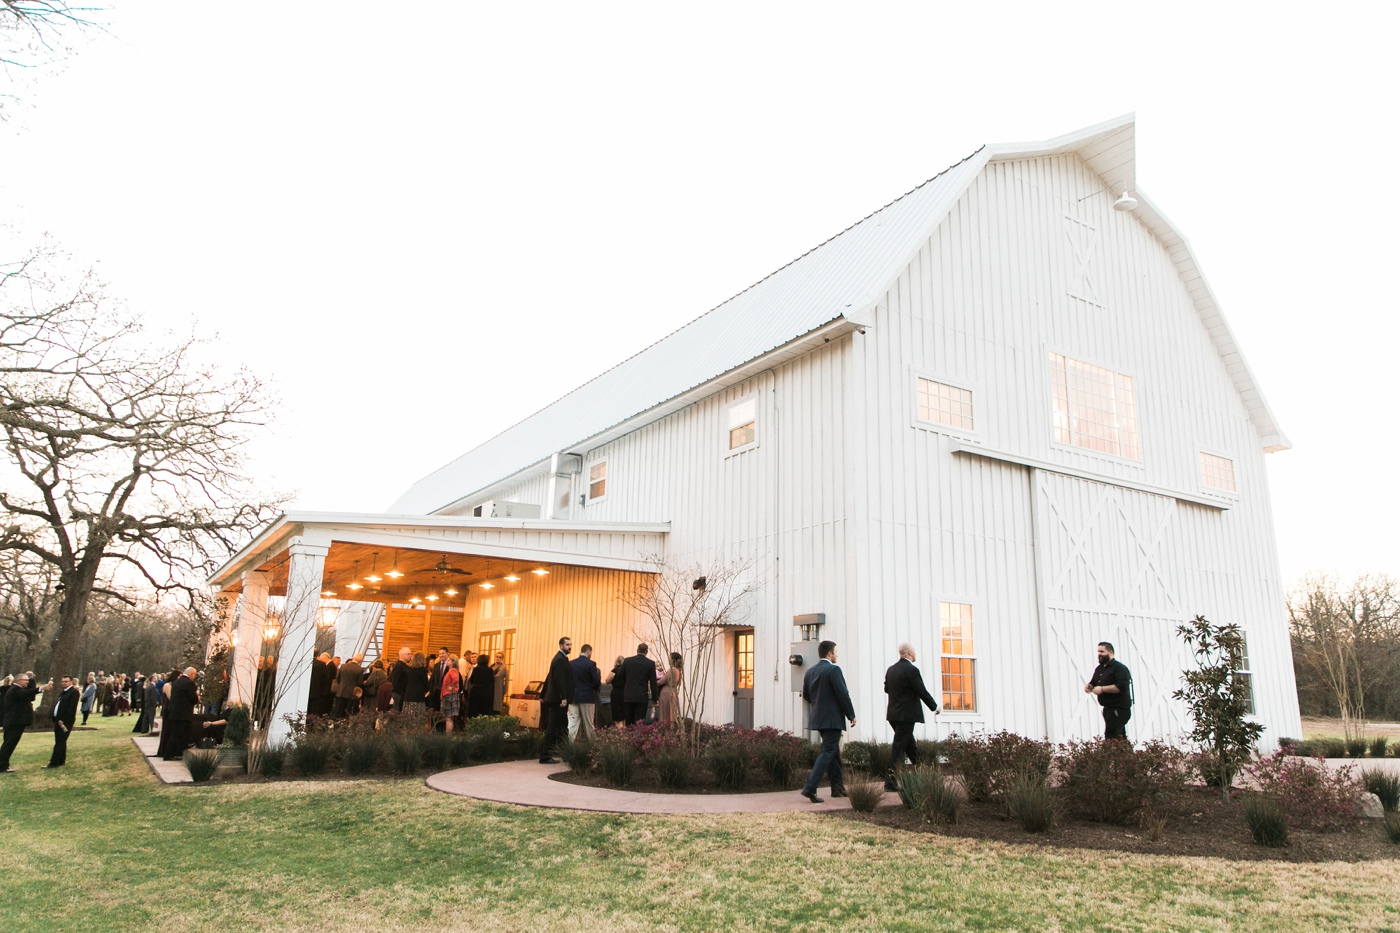 We Finally Had The Opportunity To Photograph A Wedding At Famed White Barn Venue Sparrow This Is One Of Most Breathtaking Venues